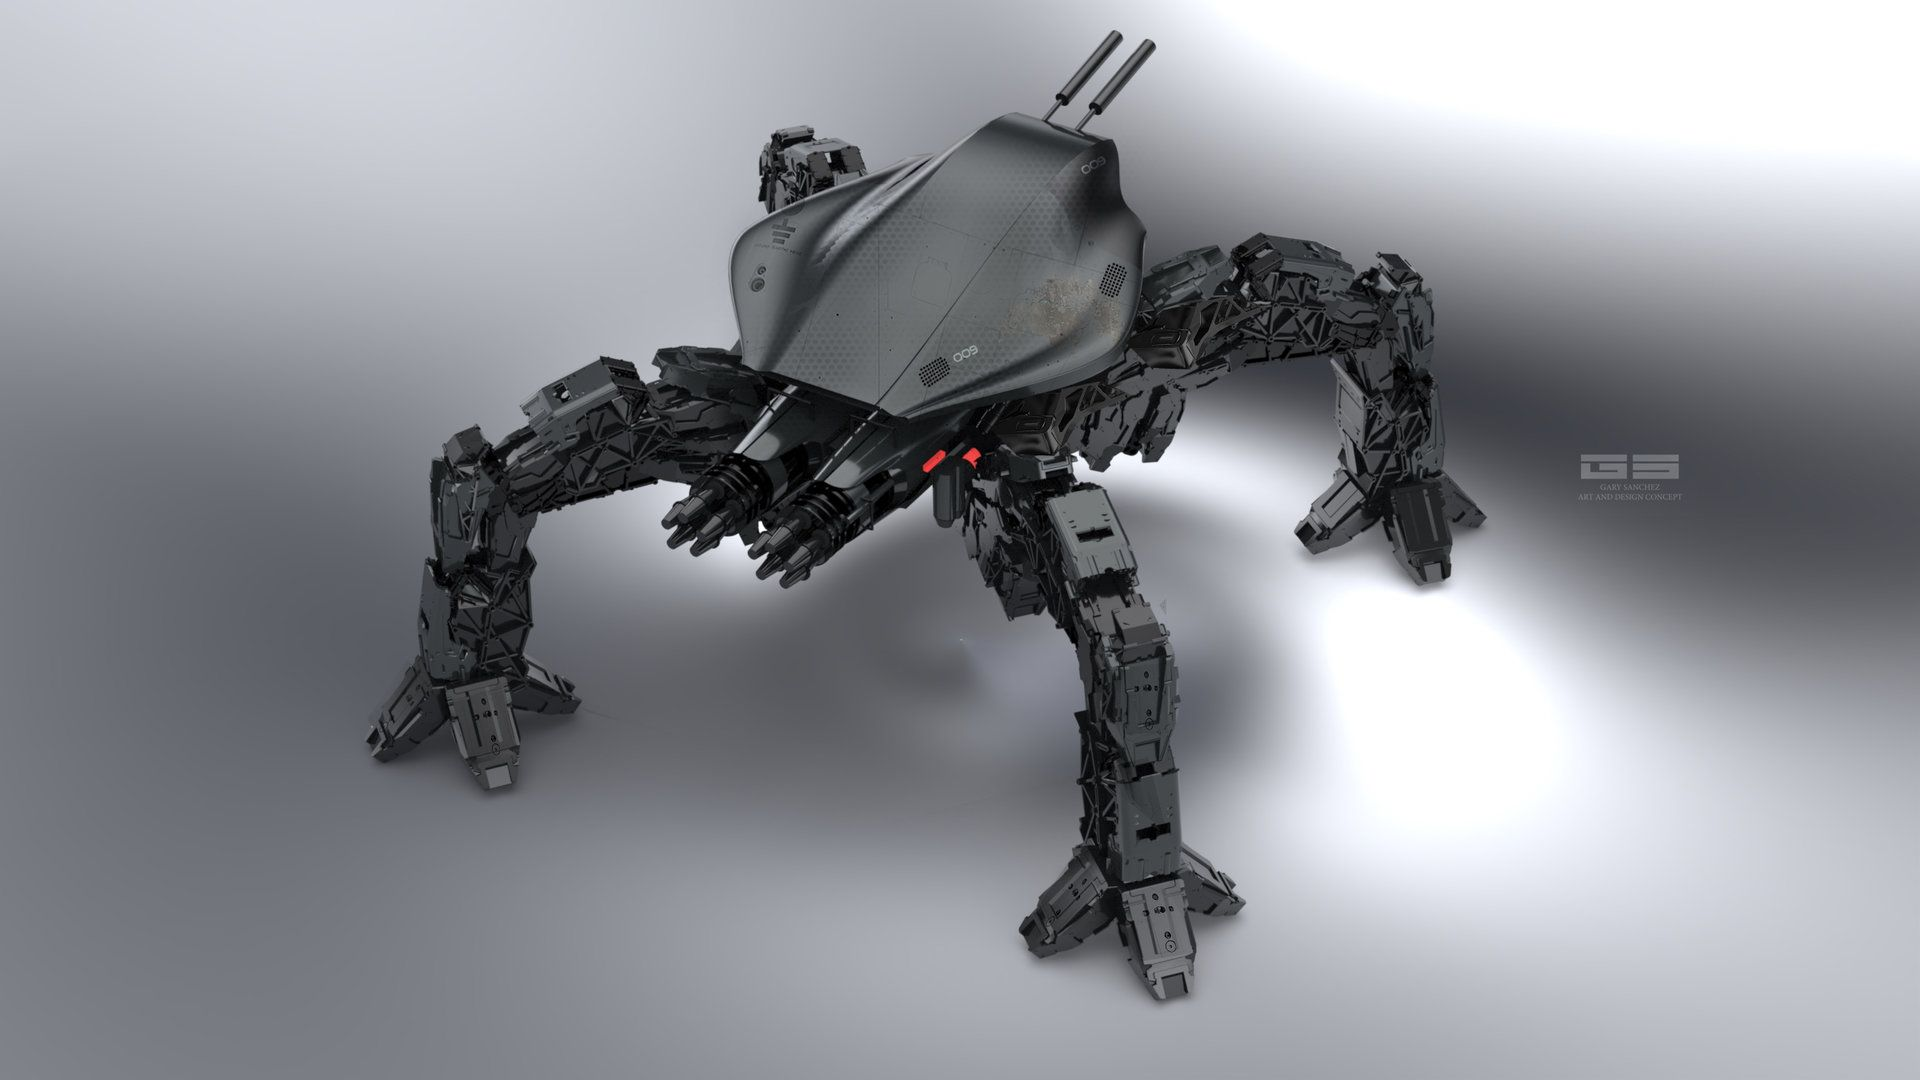 ArtStation - 009 robotics, GARY SANCHEZ